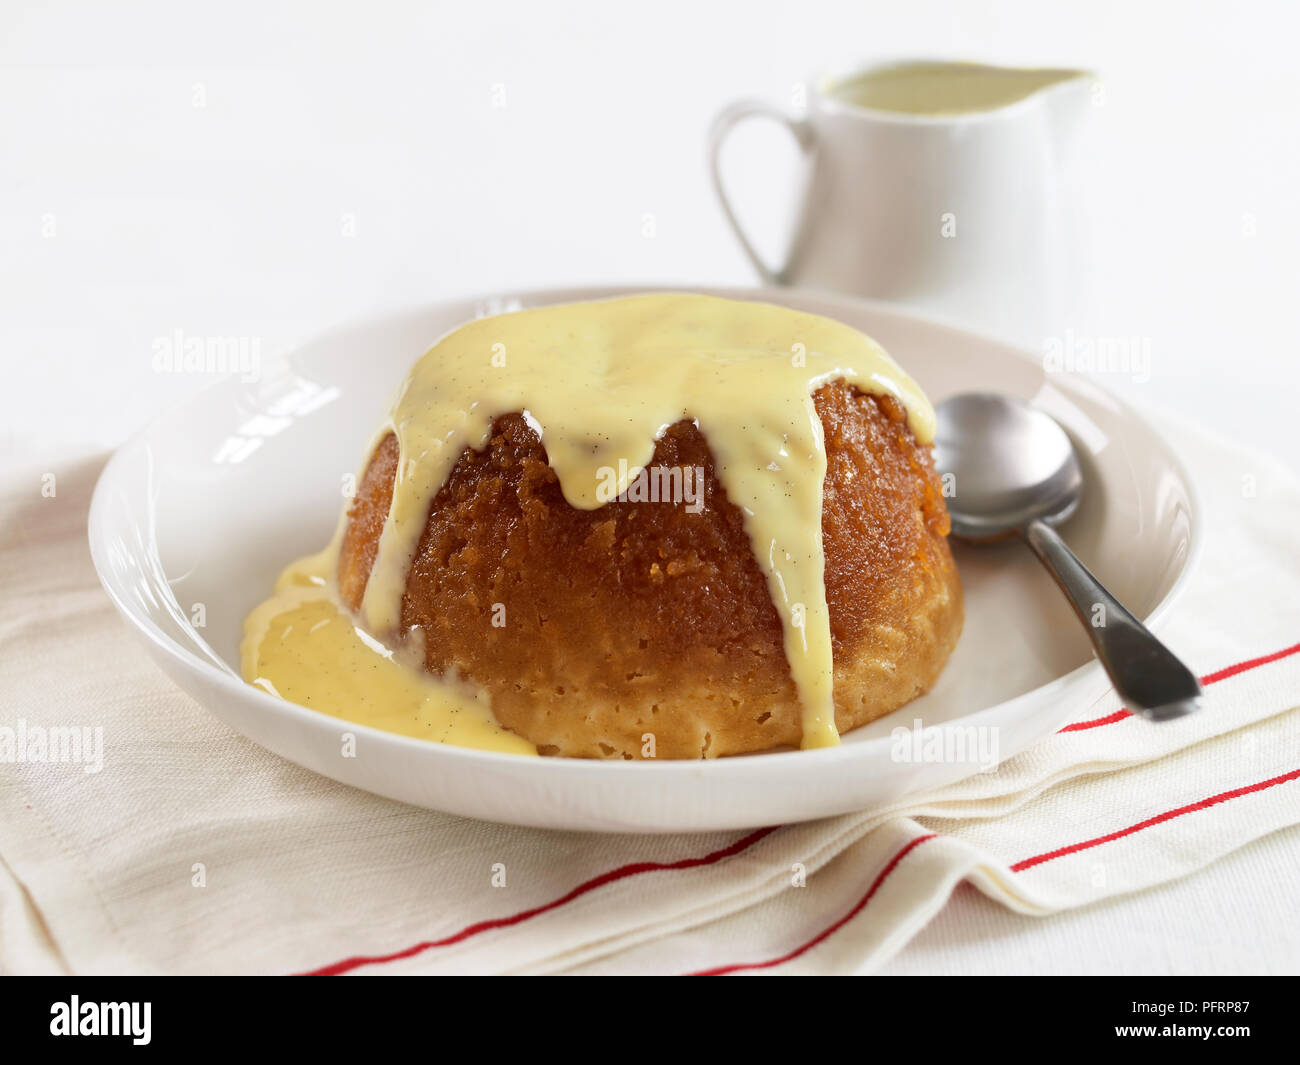 Treacle pudding with custard - Stock Image